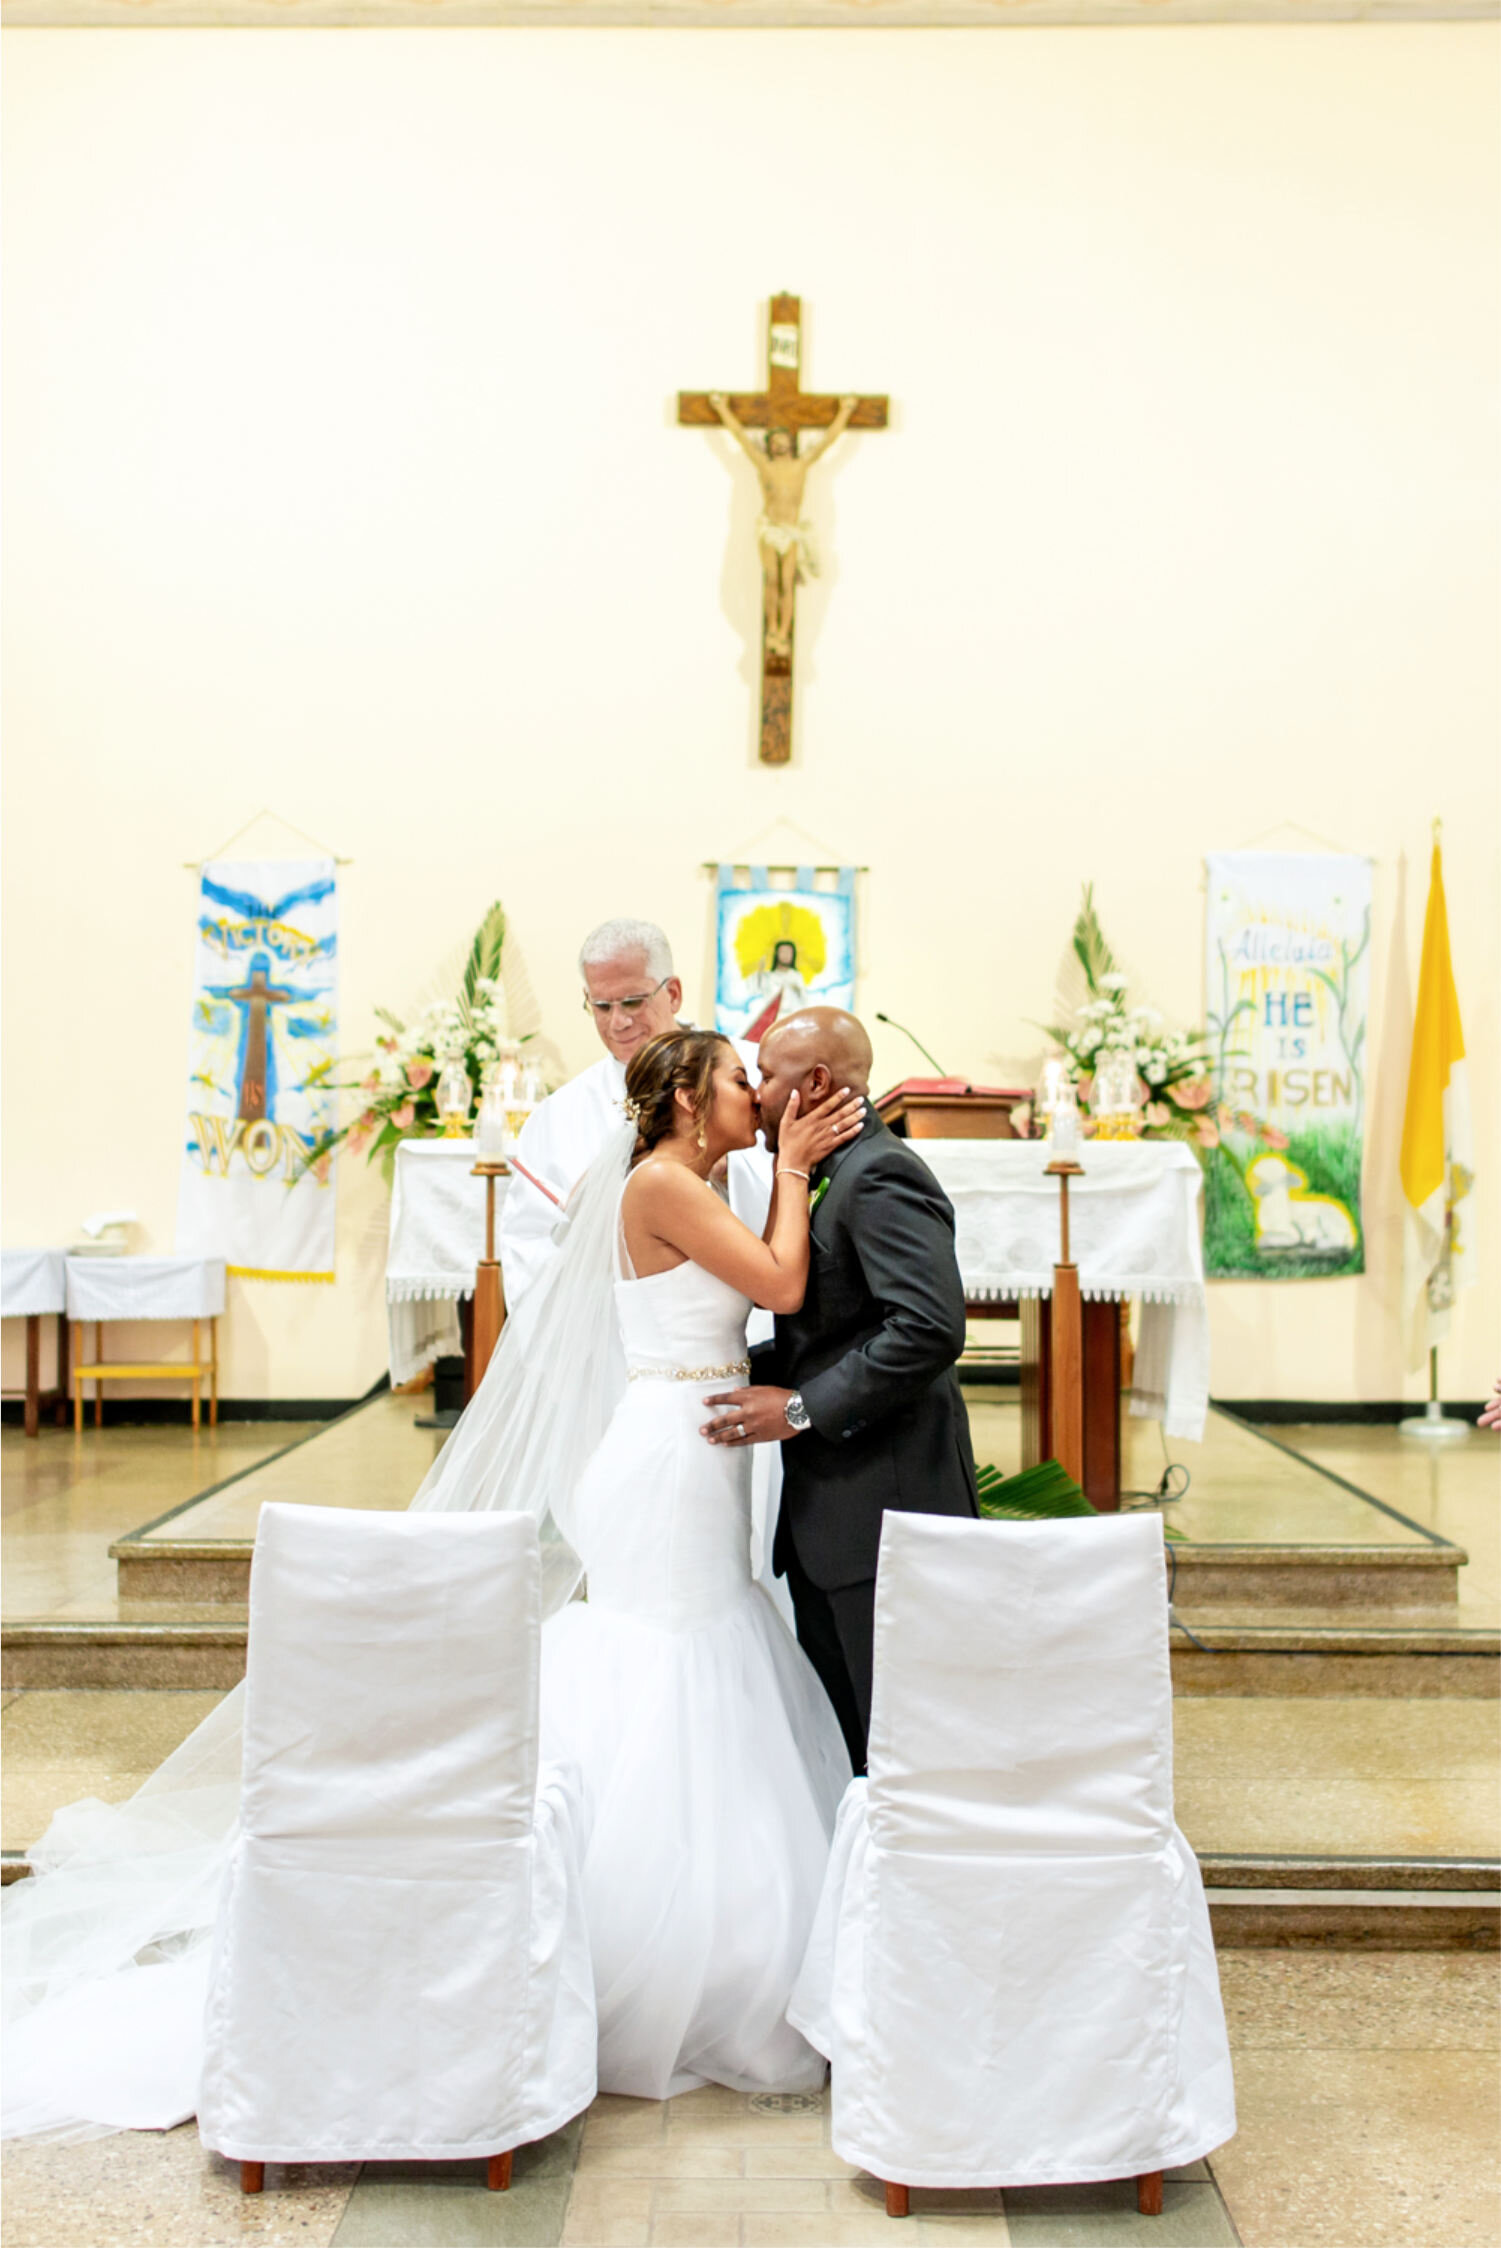 Cherysse & Ryan Wedding BLOG 38.jpg